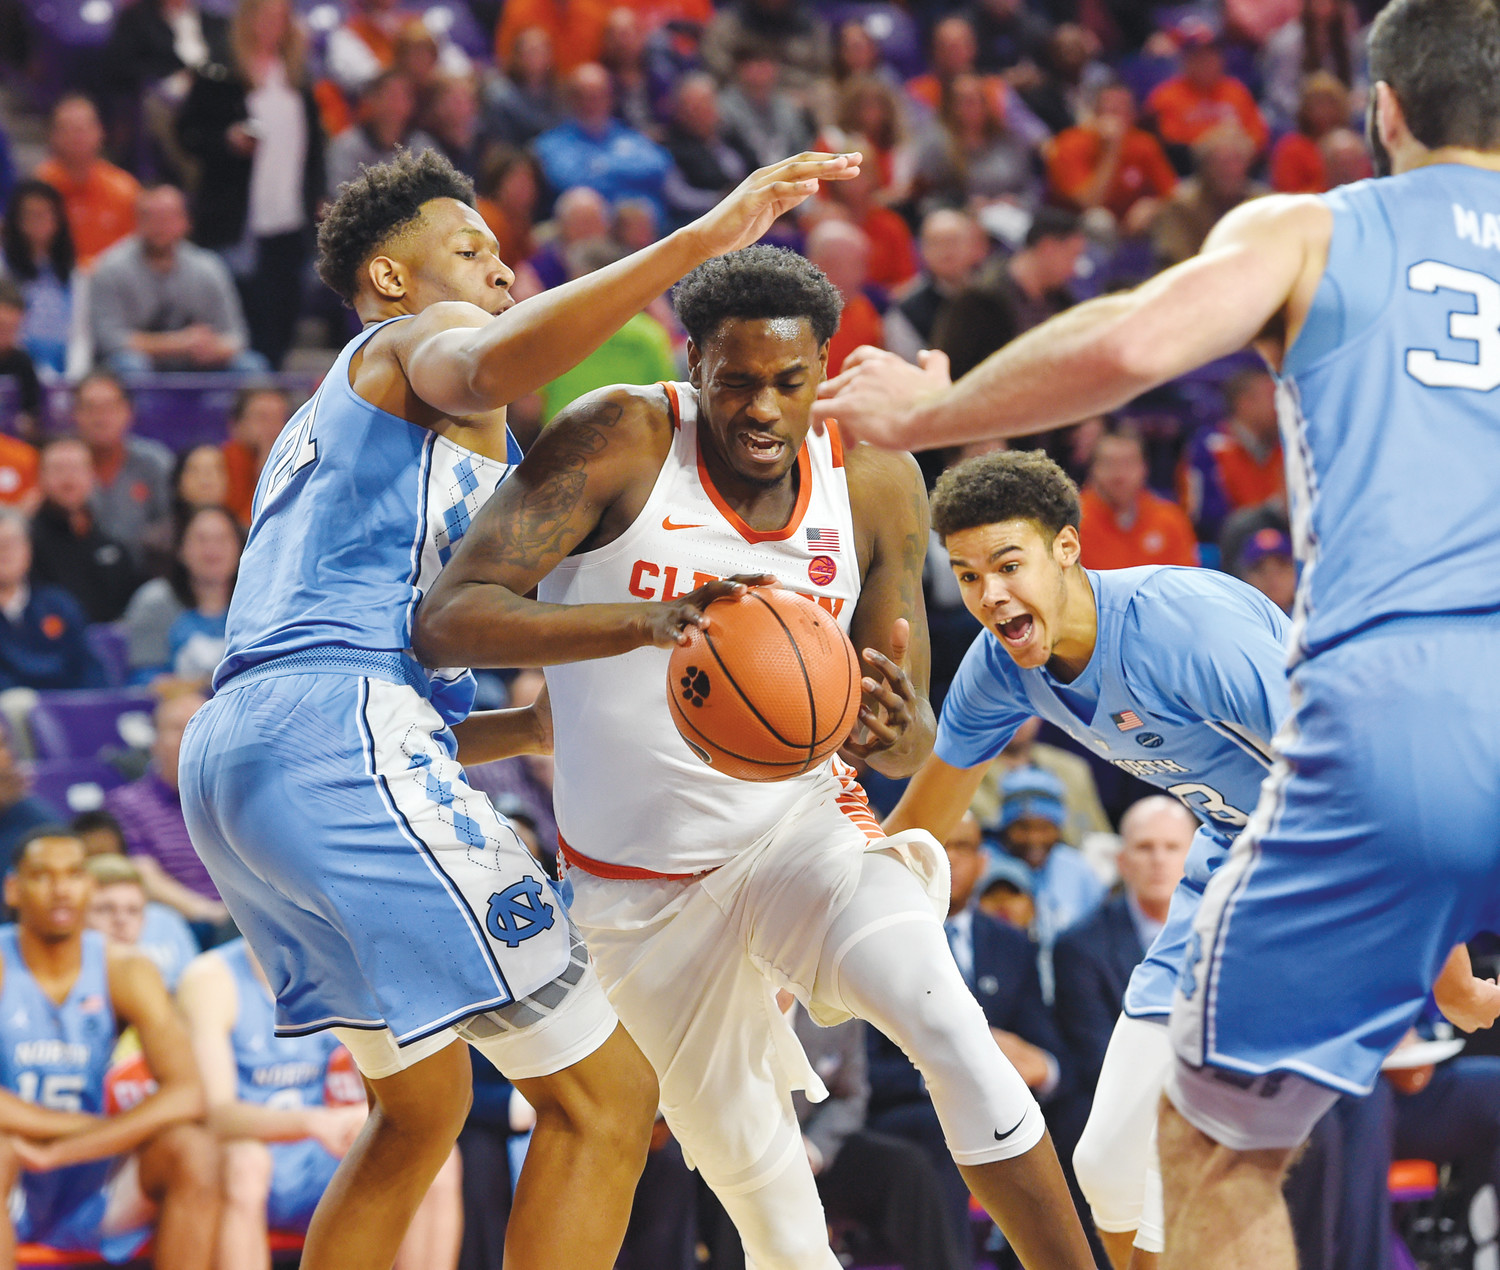 Clemson's Elijah Thomas, center, drives between North Carolina defenders, including Sterling Manley, left, during the first half of their game Tuesday in Clemson.